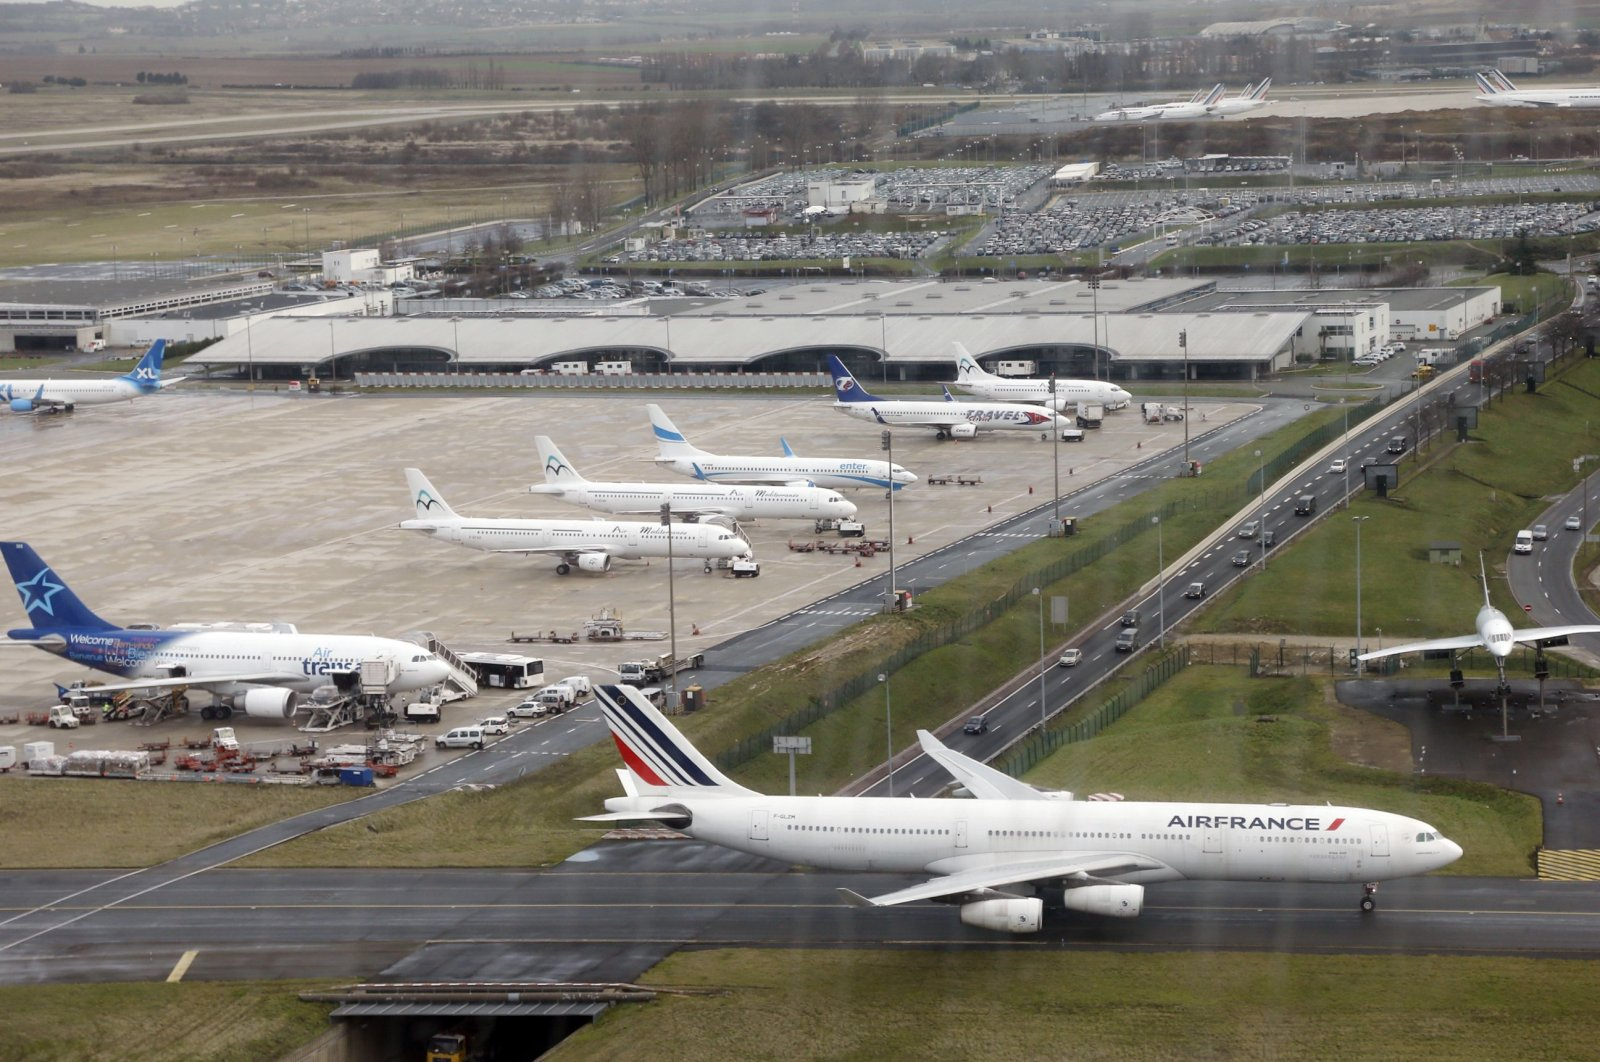 An aircraft taxis on the tarmac of the Roissy-Charles de Gaulle airport on the outskirts of Paris, Dec. 27, 2012. (AFP Photo)